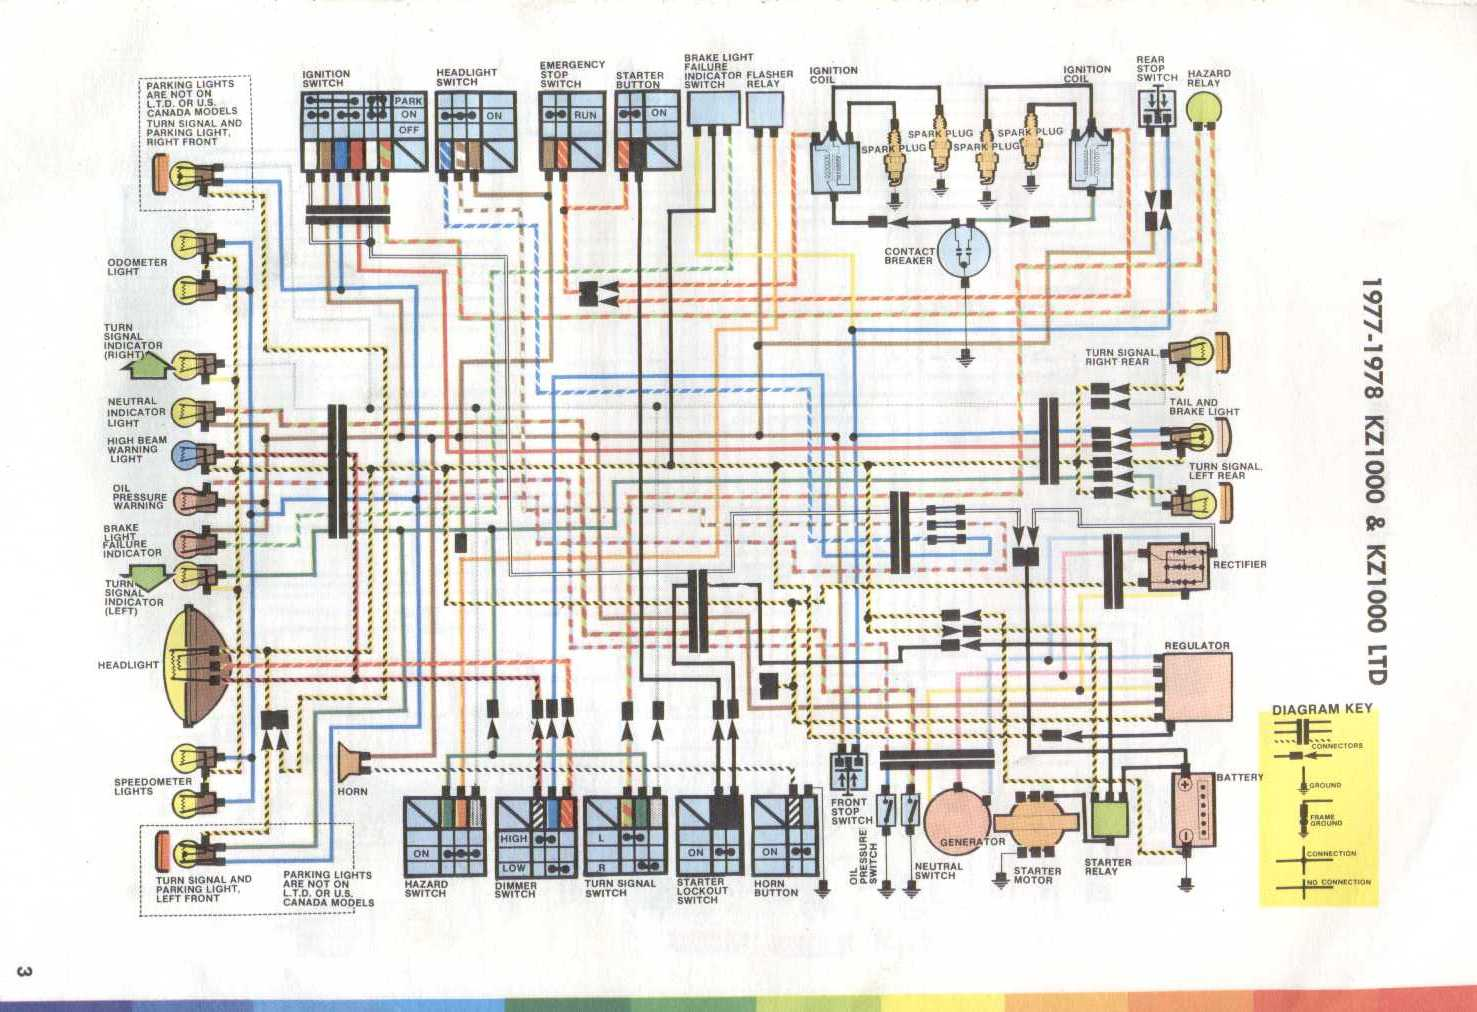 hight resolution of kz1000 chopper wiring diagram wiring diagram expert 1978 kawasaki kz1000 wiring diagram free picture